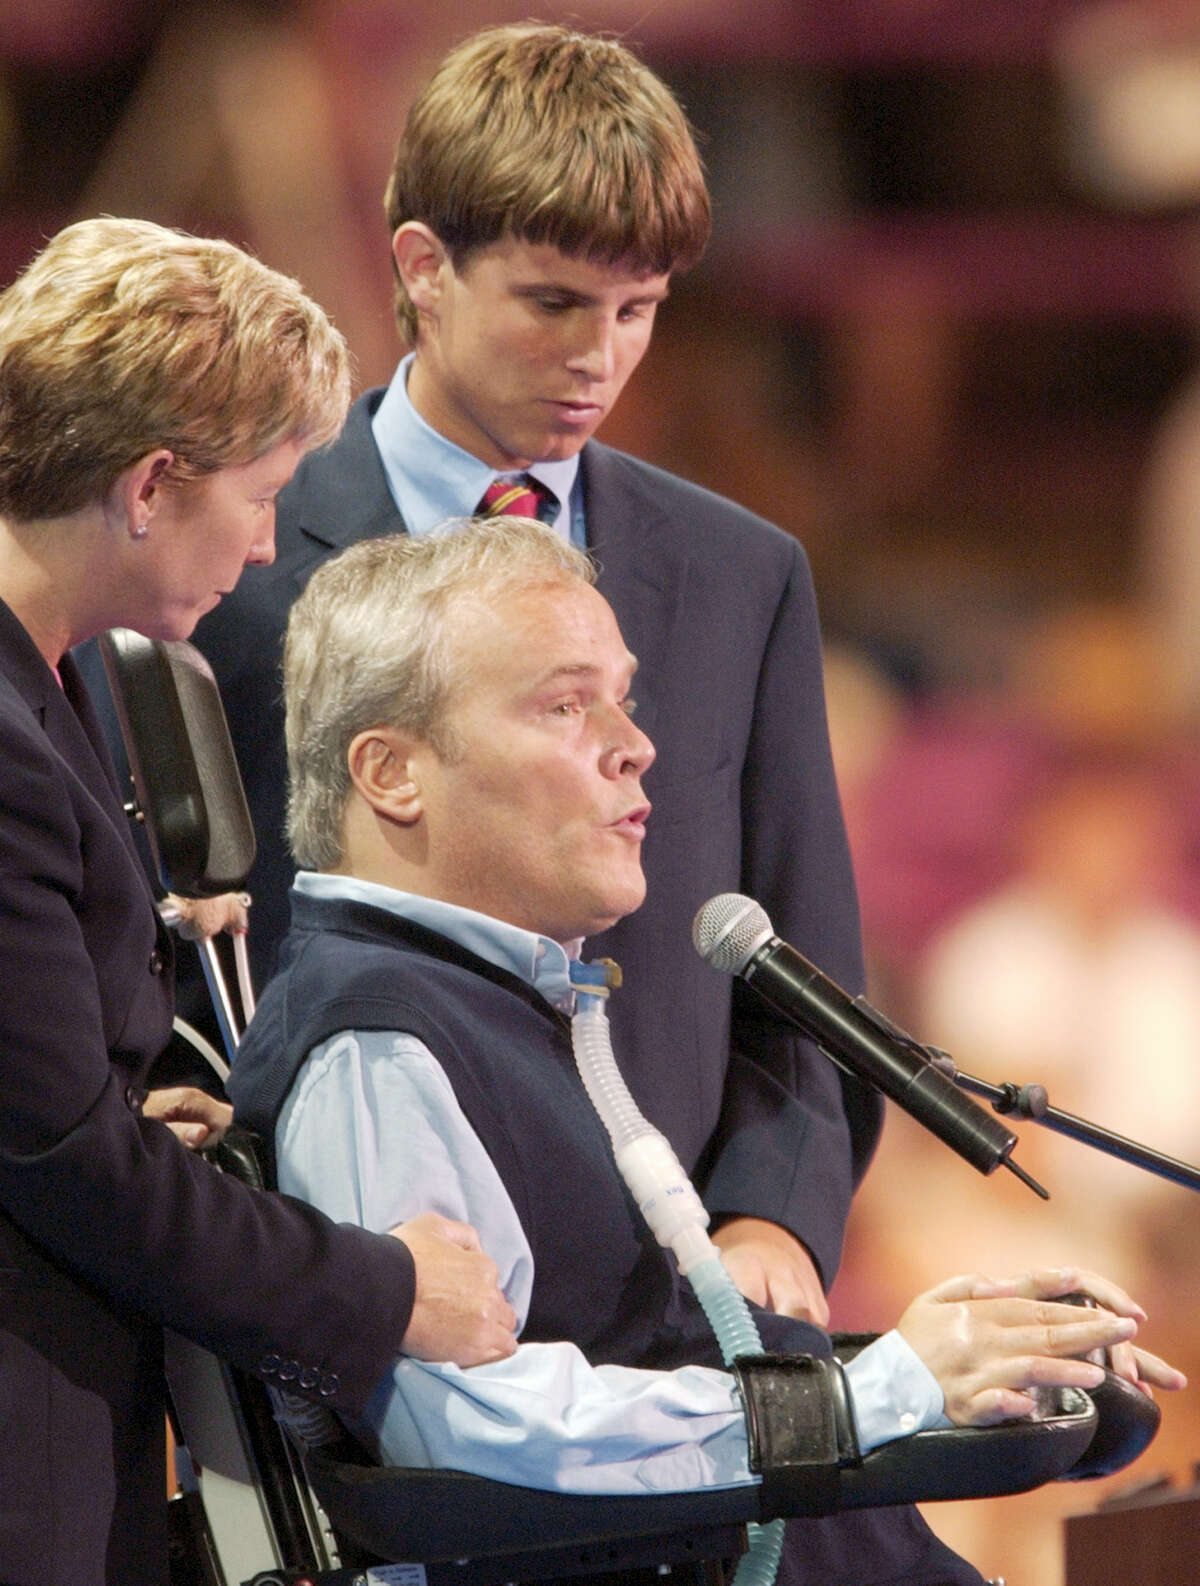 Disabled former New York City police officer Steven McDonald addresses delegates, as family members stand beside him at Madison Square Garden during the Republican National Convention in New York in 2004. McDonald, who was paralyzed by a bullet and became an international voice for peace after he publicly forgave the gunman, died Tuesday, Jan. 10, 2017, at the age of 59.